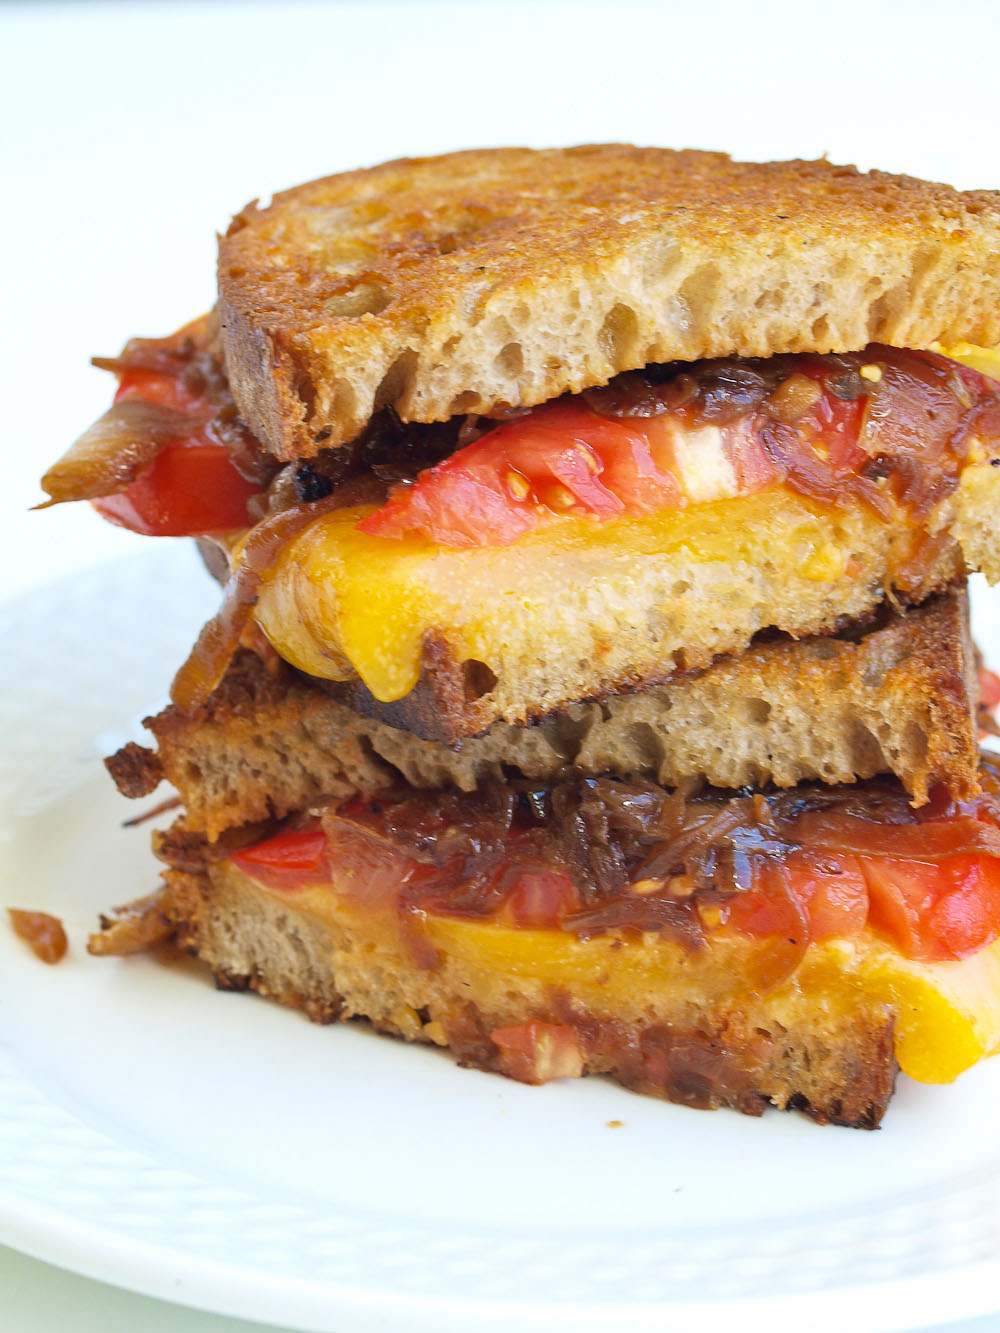 The Ultimate Grilled Cheese Sandwich with Caramelized Onions and Tomato. This is the BEST recipe for twist on the classic grilled cheese. So much better!